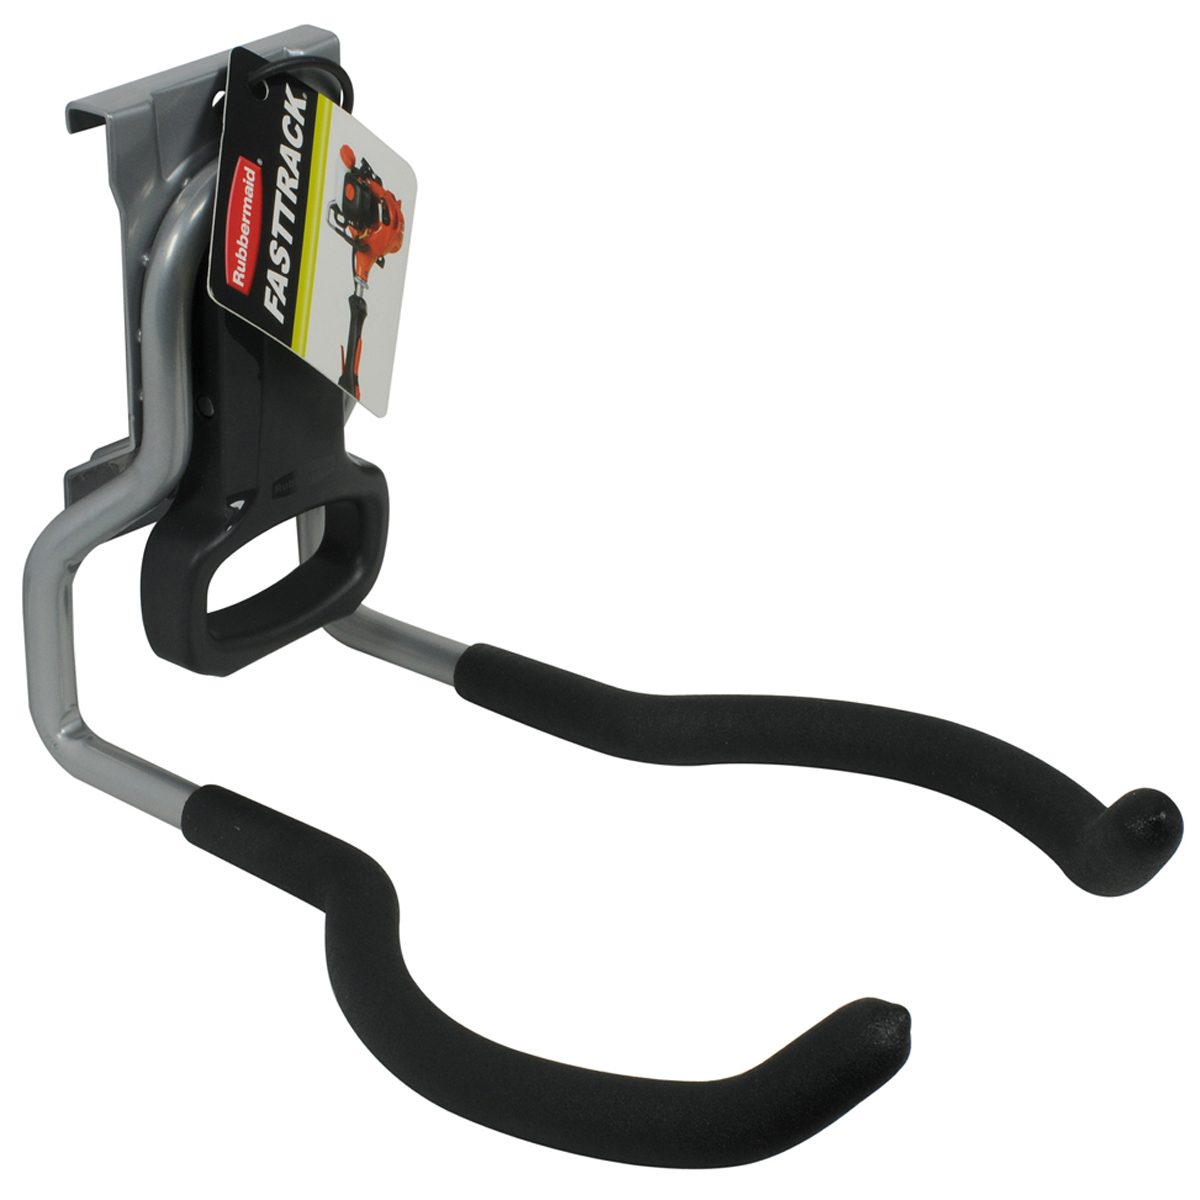 FastTrack Power Tool Hook